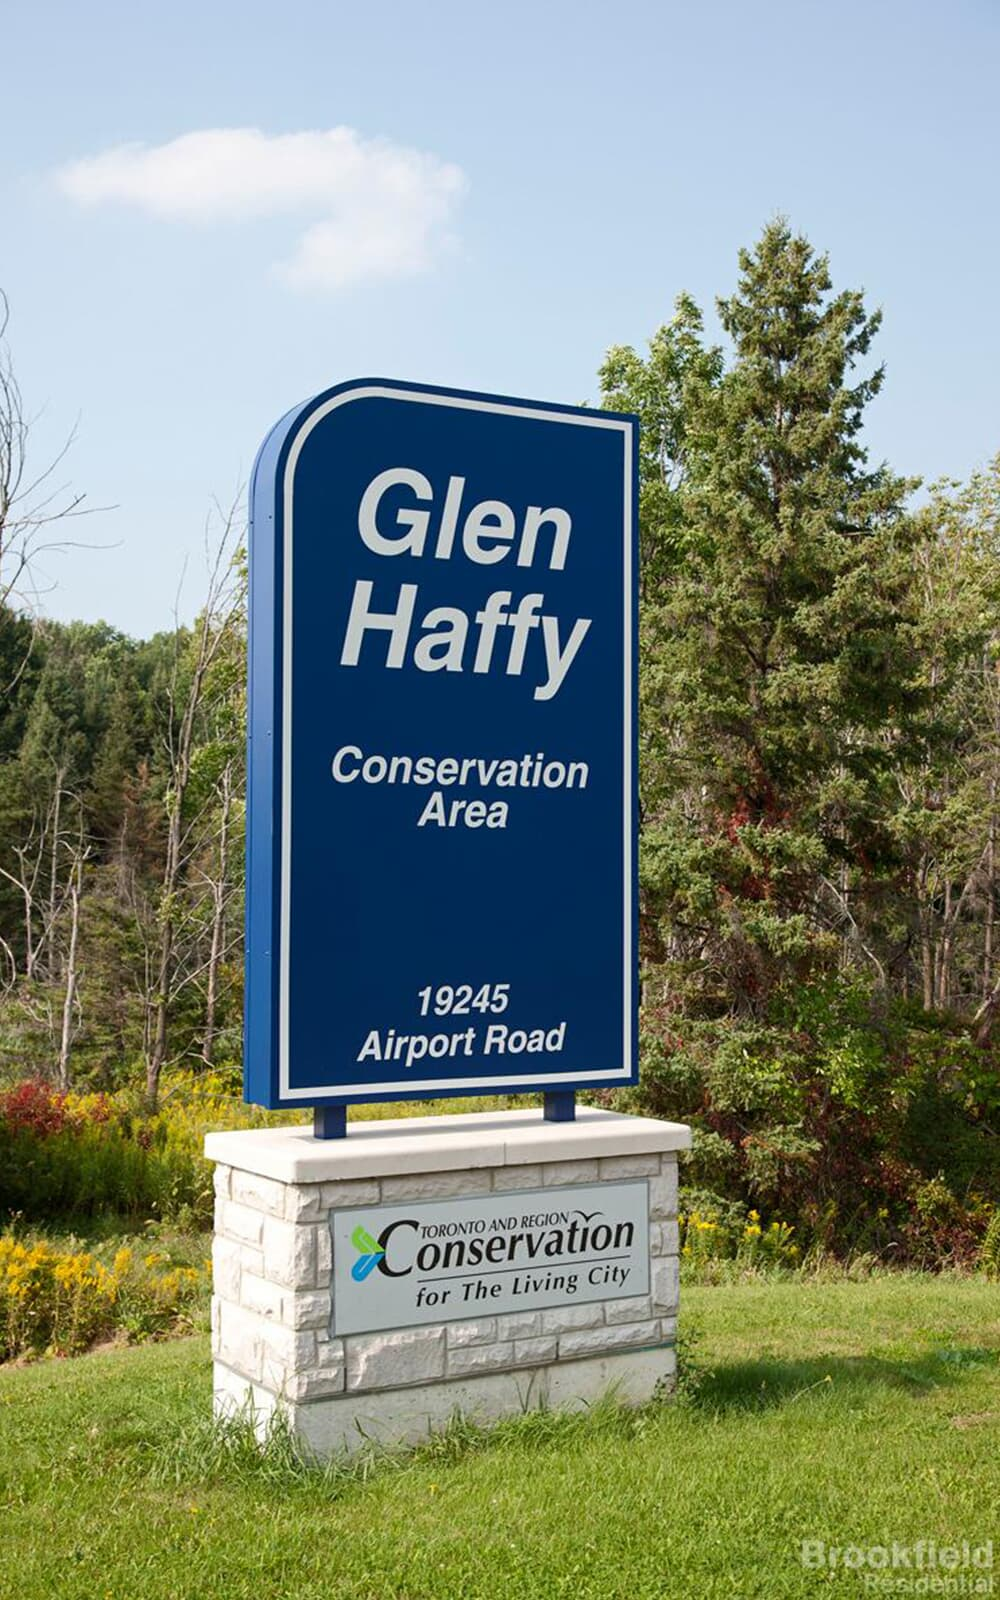 Glen Haffy Conservation Area in Caledon East, ON